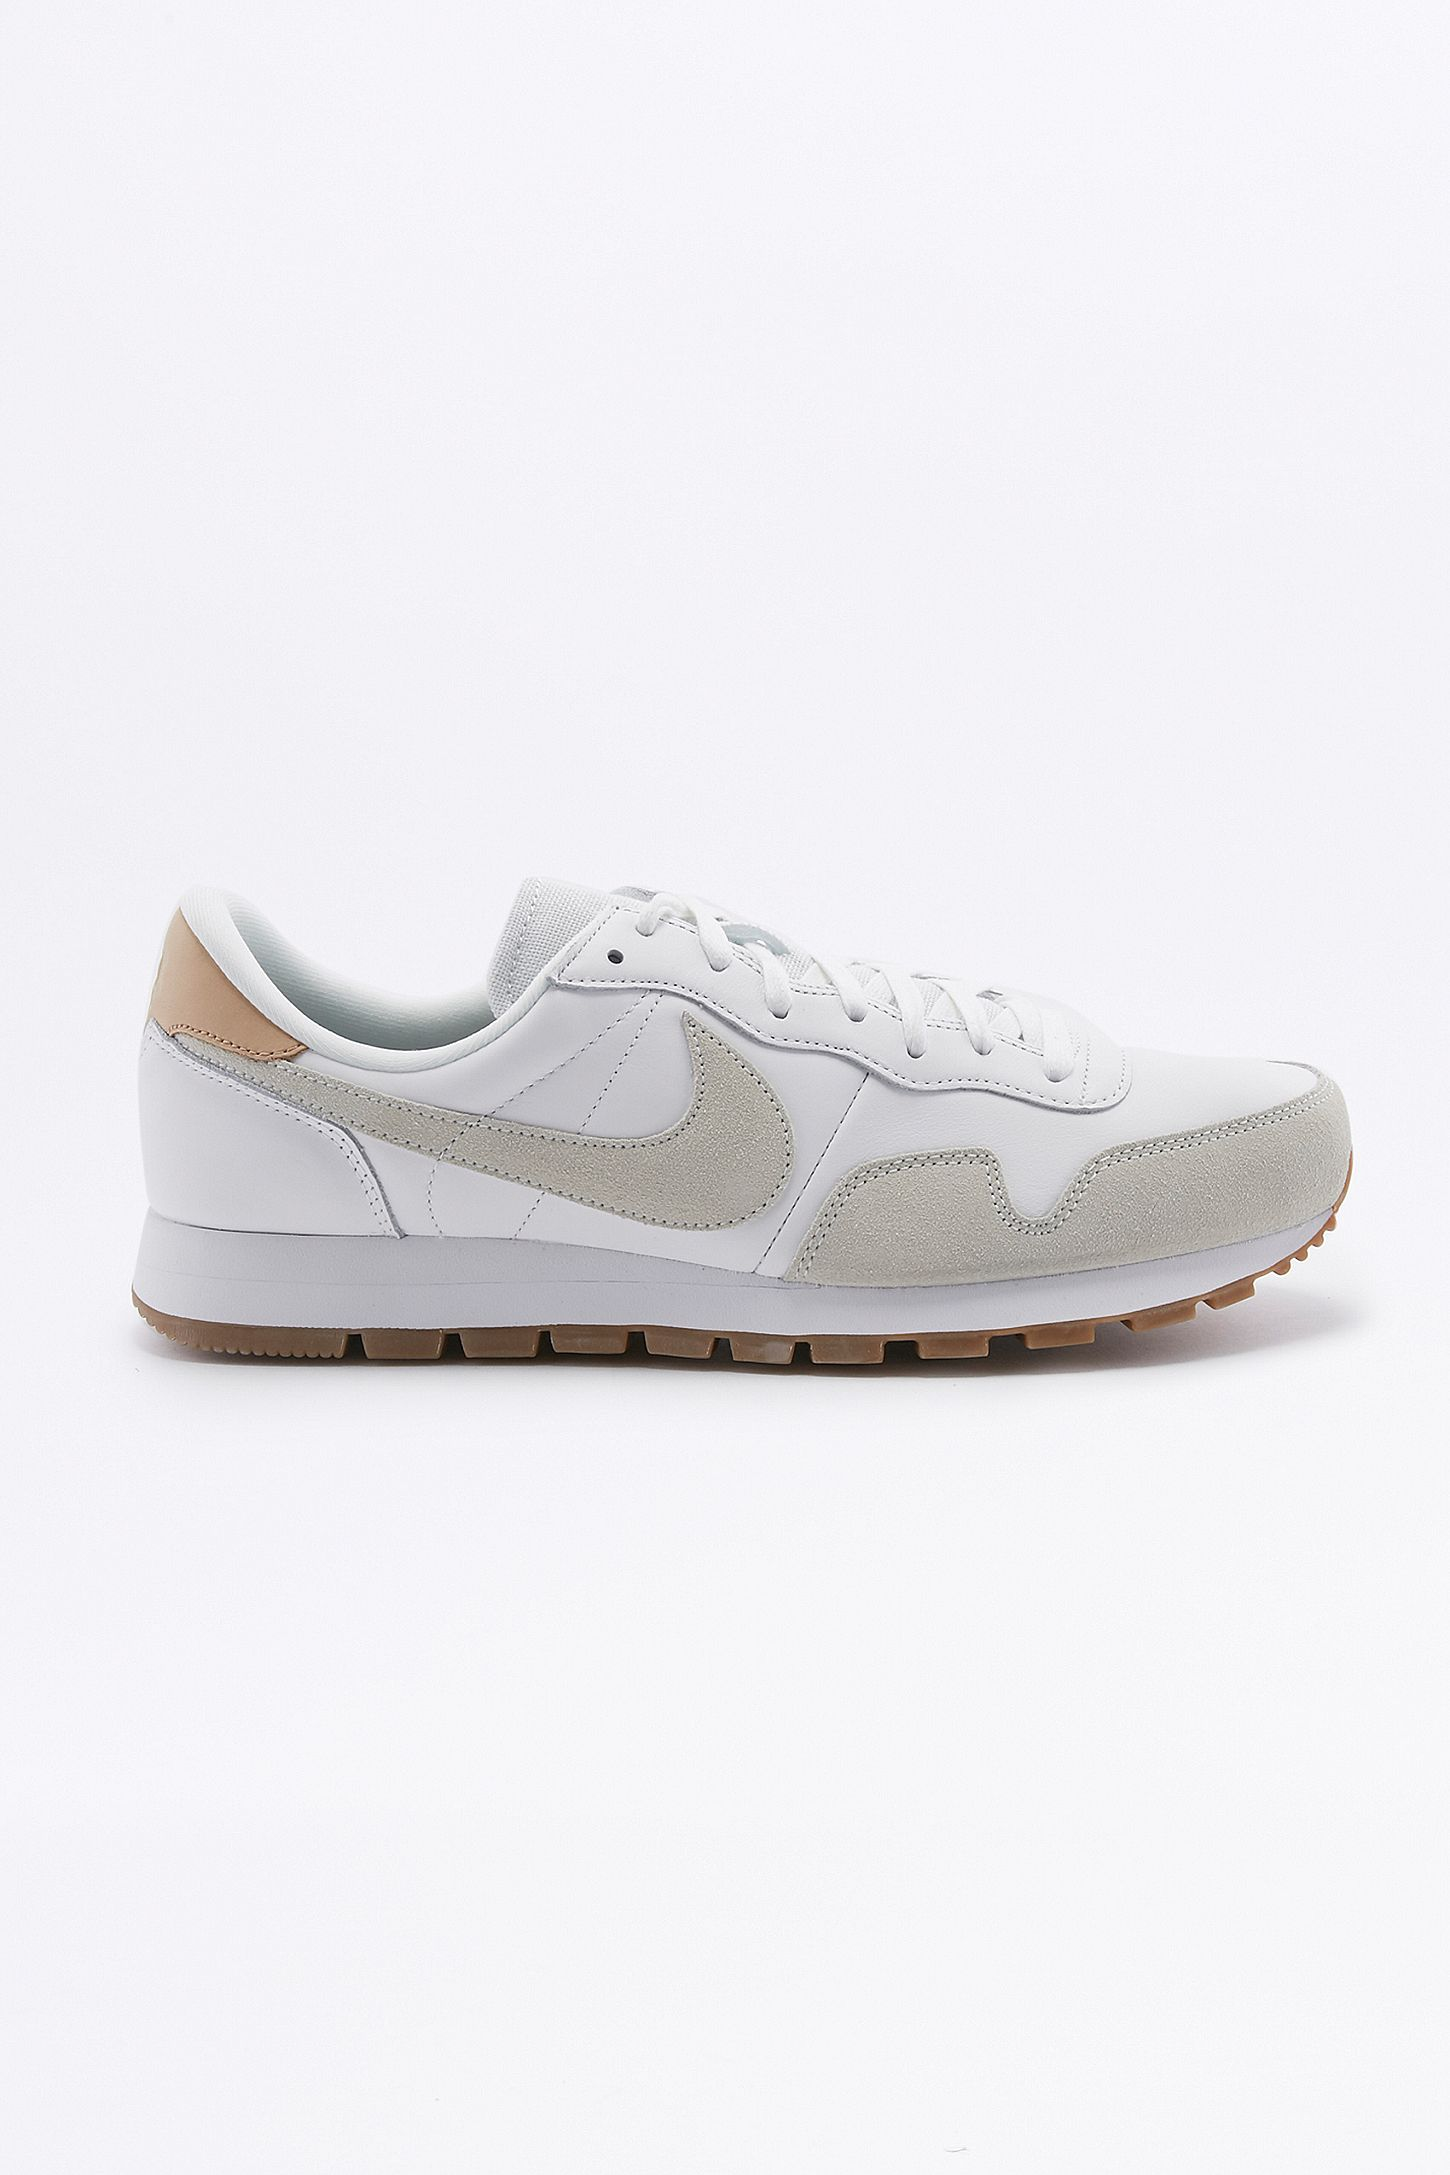 watch 86d23 044cd Nike Air Pegasus 83 Premium White Trainers. Click on image to zoom. Hover  to zoom. Double Tap to Zoom